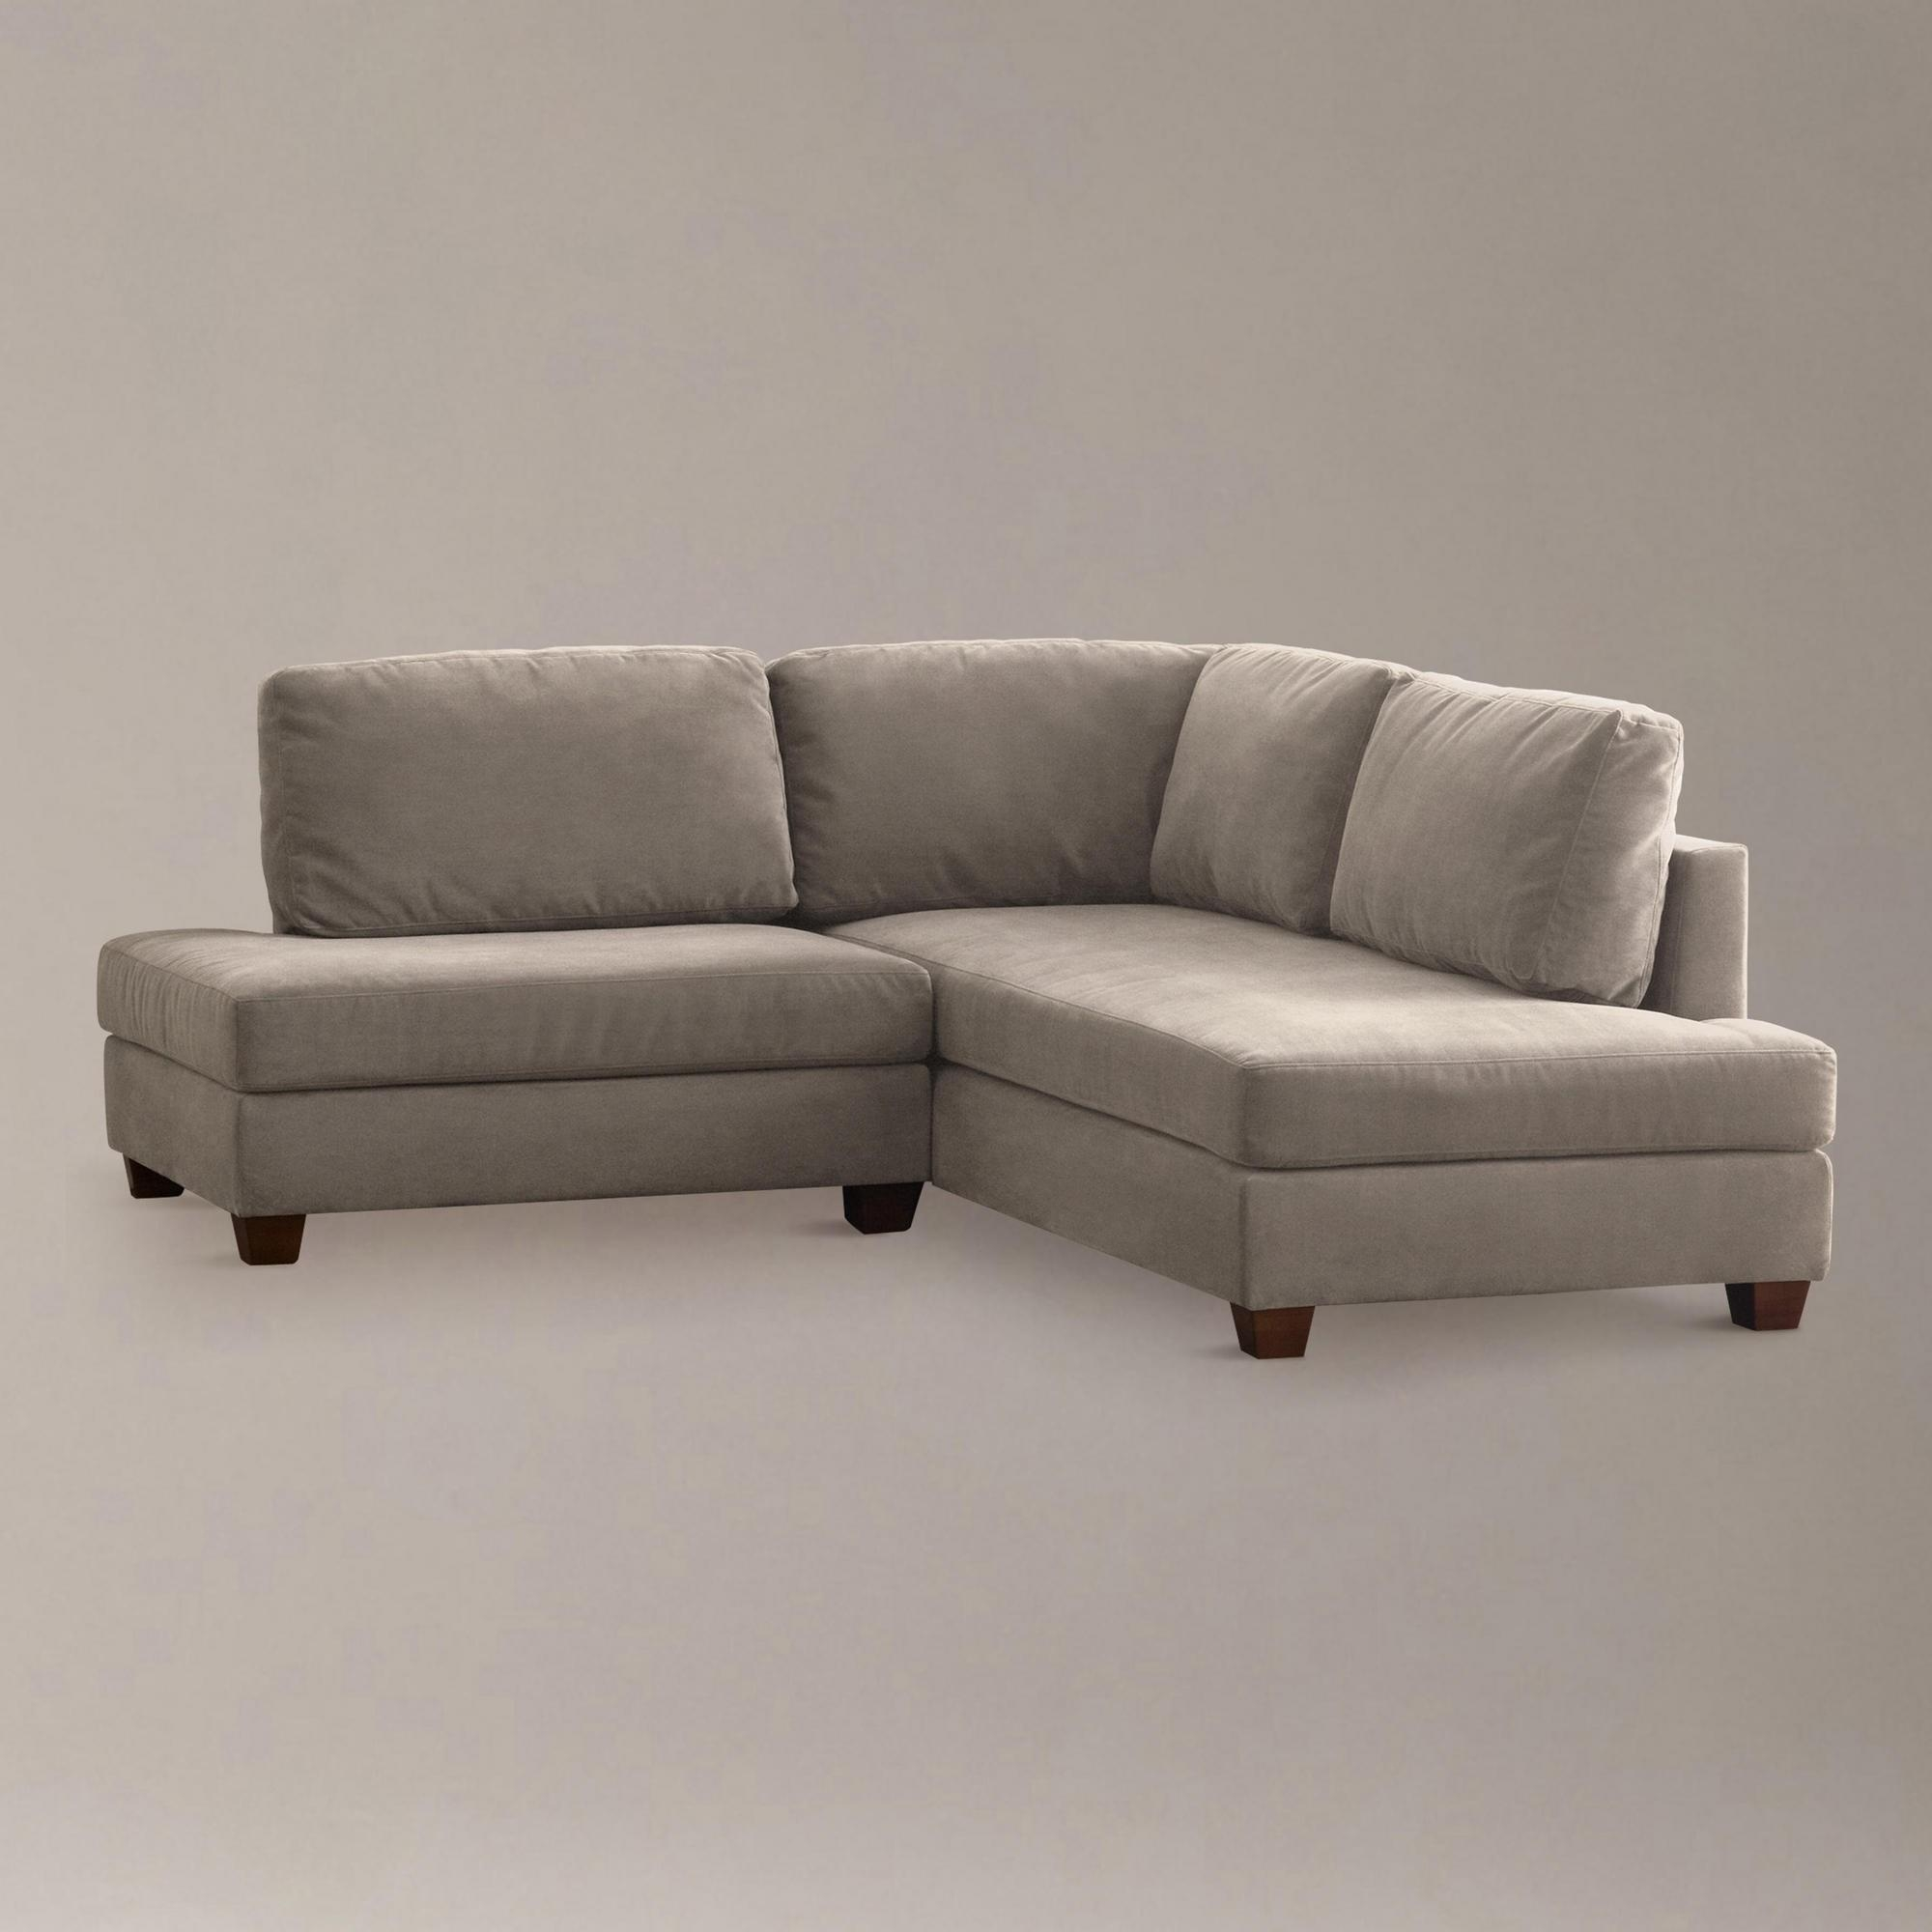 Beige Short Sectional Sofa Without Armrest For Small Living Room For Short Sectional Sofas (Image 2 of 20)